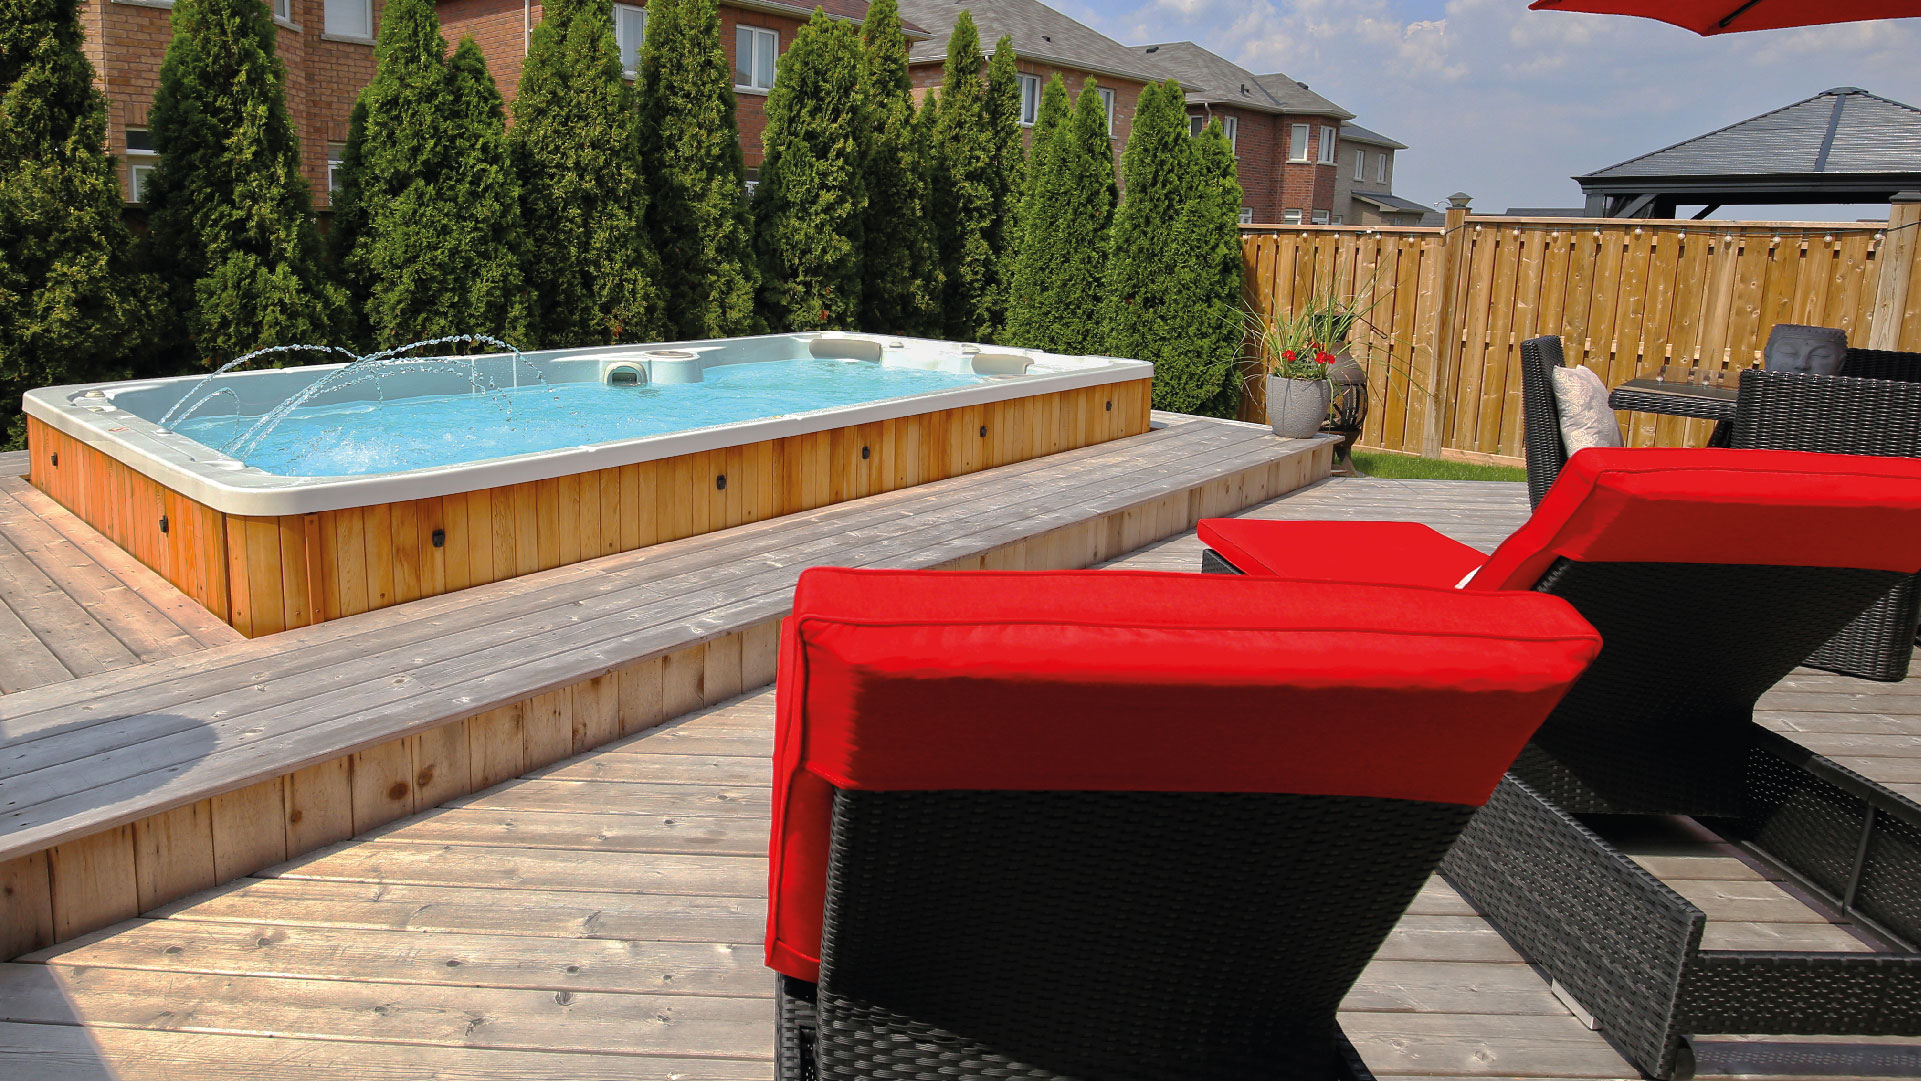 At Hydropool Devon we provide self-cleaning SwimSpas as well as rattan garden furniture, that is both weatherproof and UV resistant.